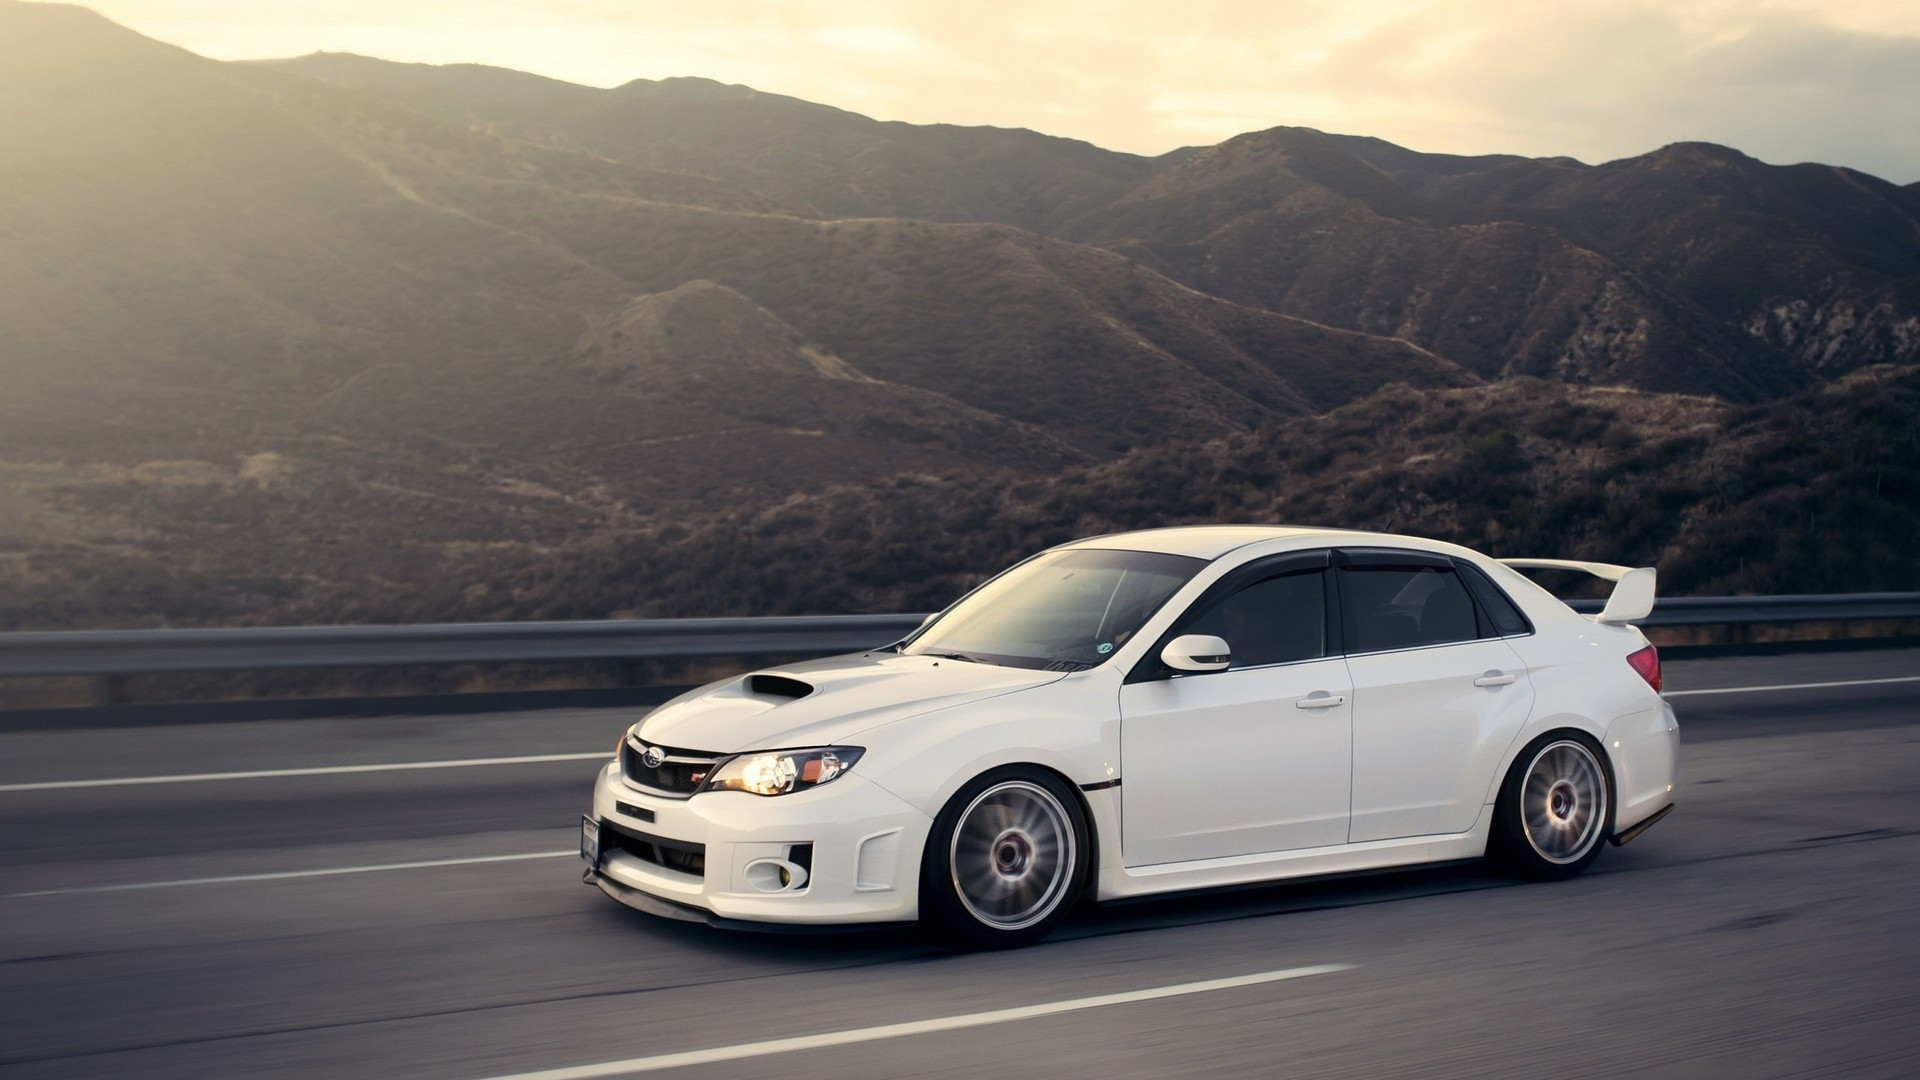 47192 download wallpaper Transport, Auto, Subaru screensavers and pictures for free